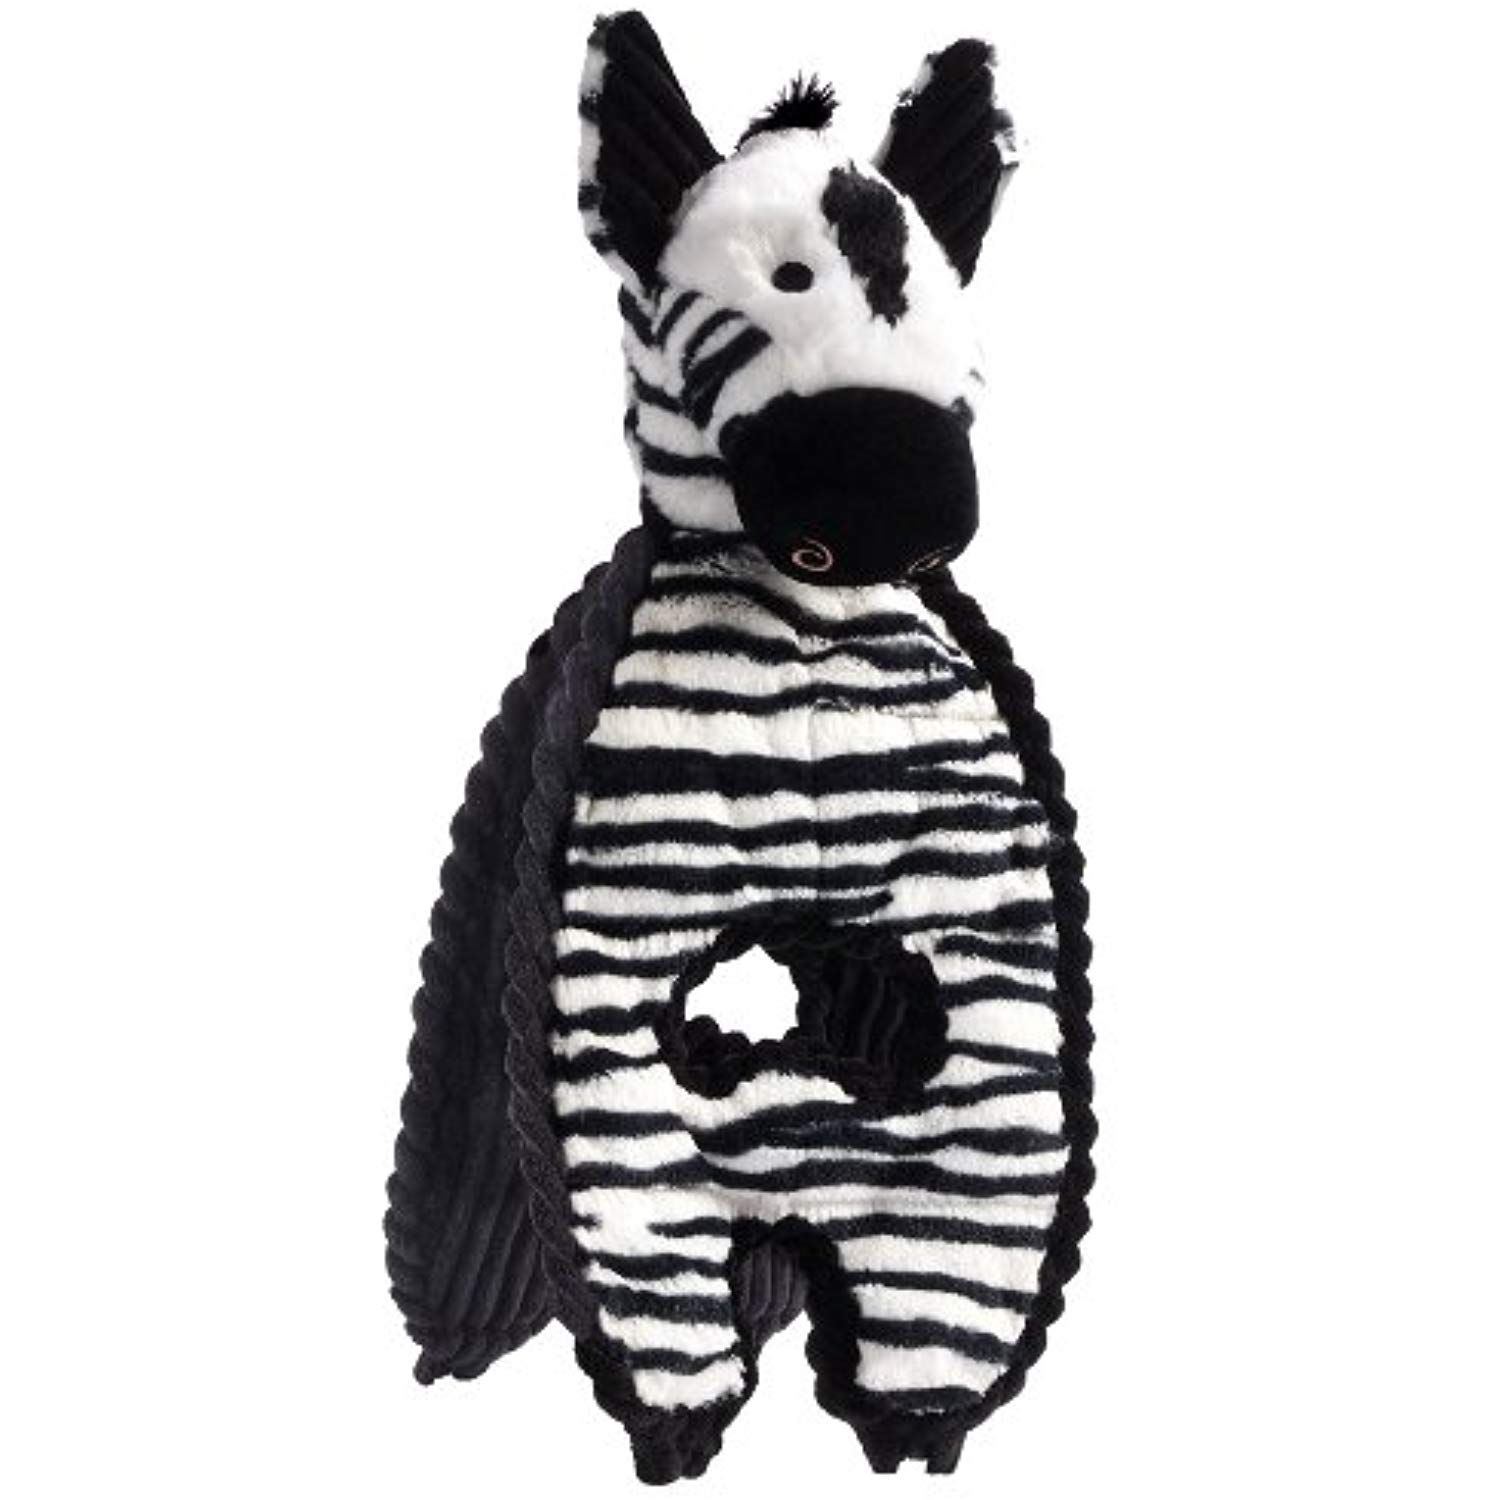 Charming Pet Cuddle Tugs Pet Squeak Toy Zebra Details Can Be